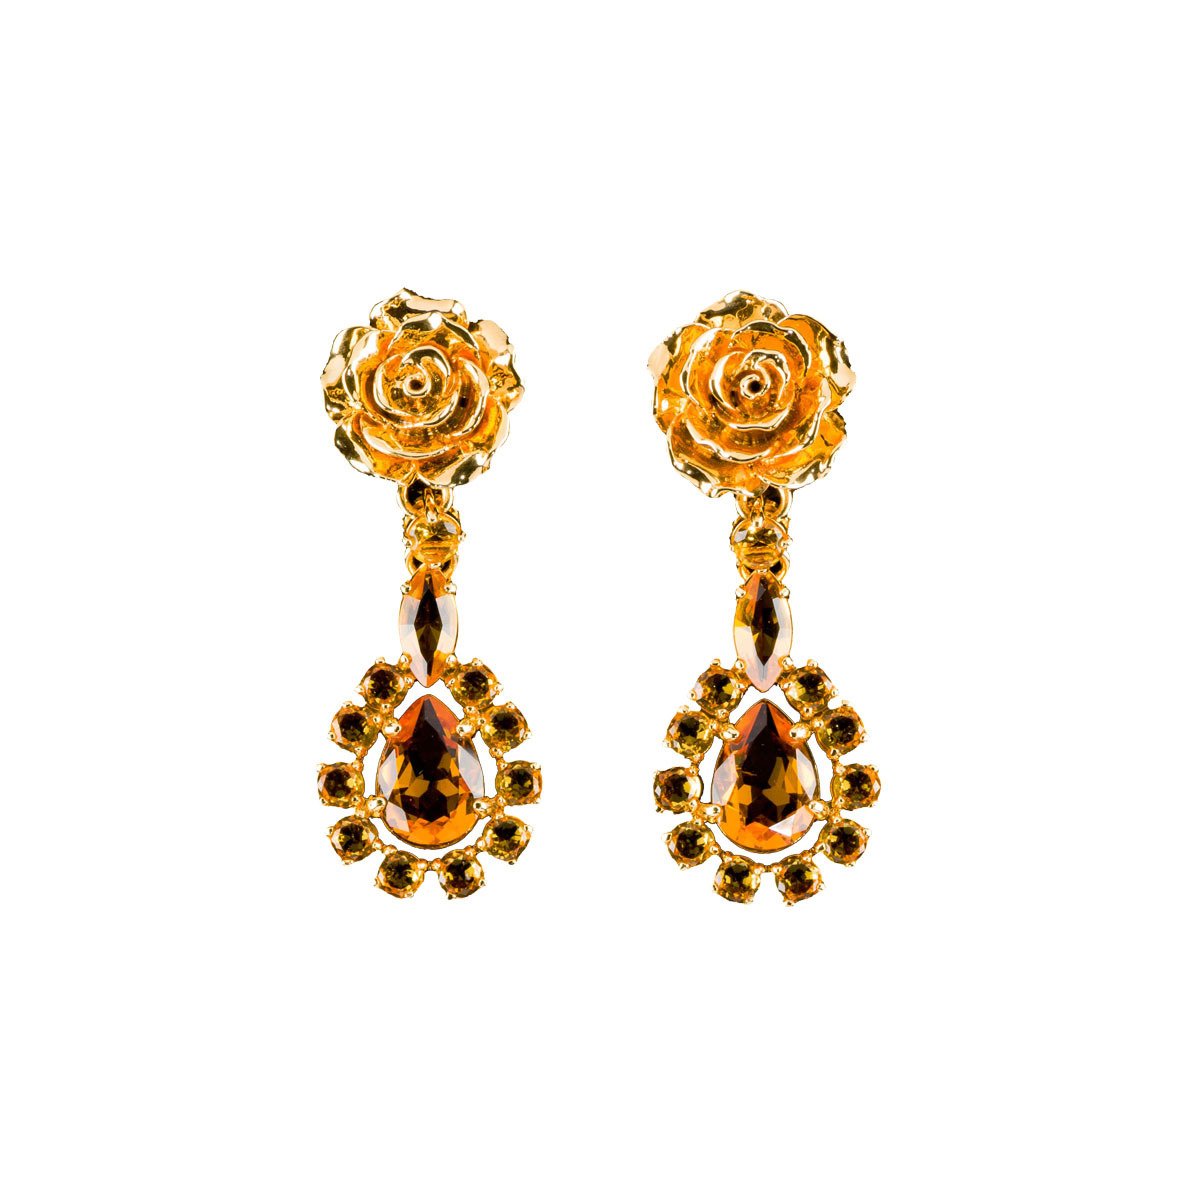 Prada Rose Earrings